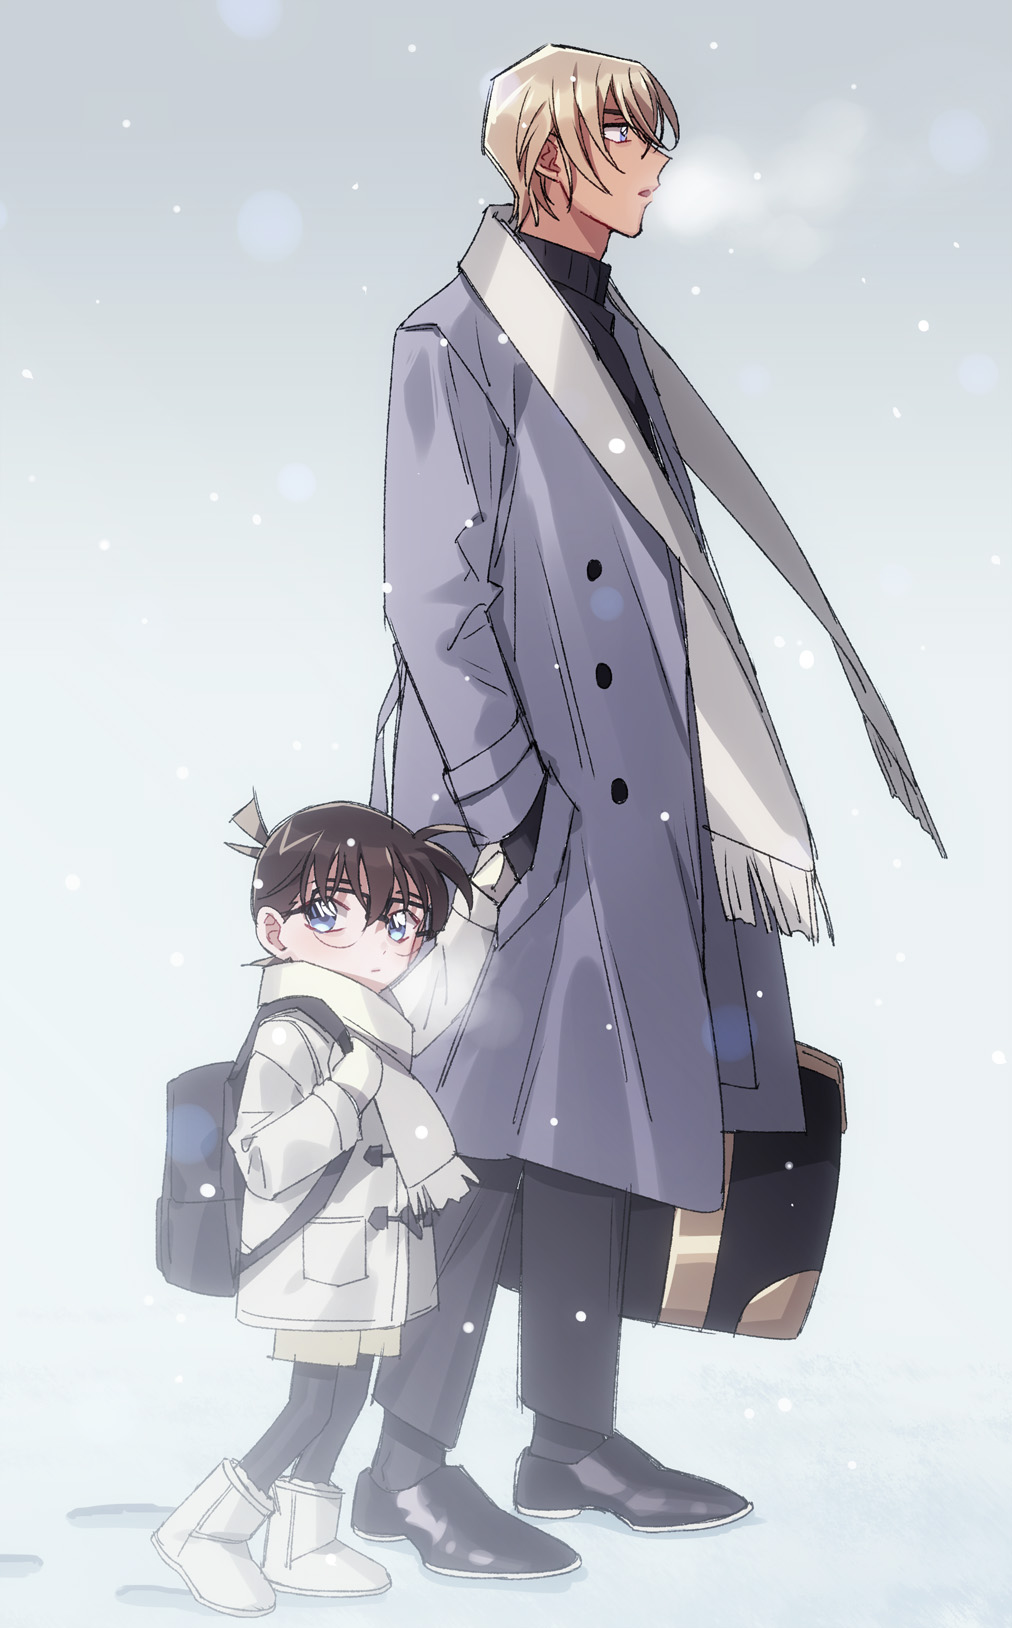 2boys amuro_tooru backpack bag bangs black-framed_eyewear black_bag black_footwear black_legwear black_pants black_sweater blue_eyes boots breath briefcase brown_gloves brown_shorts closed_mouth coat commentary_request edogawa_conan floating_scarf footprints from_side full_body glasses gloves grey_background grey_coat grey_footwear grey_gloves grey_scarf hair_between_eyes highres holding holding_briefcase holding_hands holding_strap k_(gear_labo) long_sleeves looking_at_viewer looking_to_the_side male_focus meitantei_conan multiple_boys open_clothes open_coat open_mouth pants pantyhose purple_coat scarf shoes shorts simple_background snowing sweater turtleneck turtleneck_sweater walking winter winter_clothes